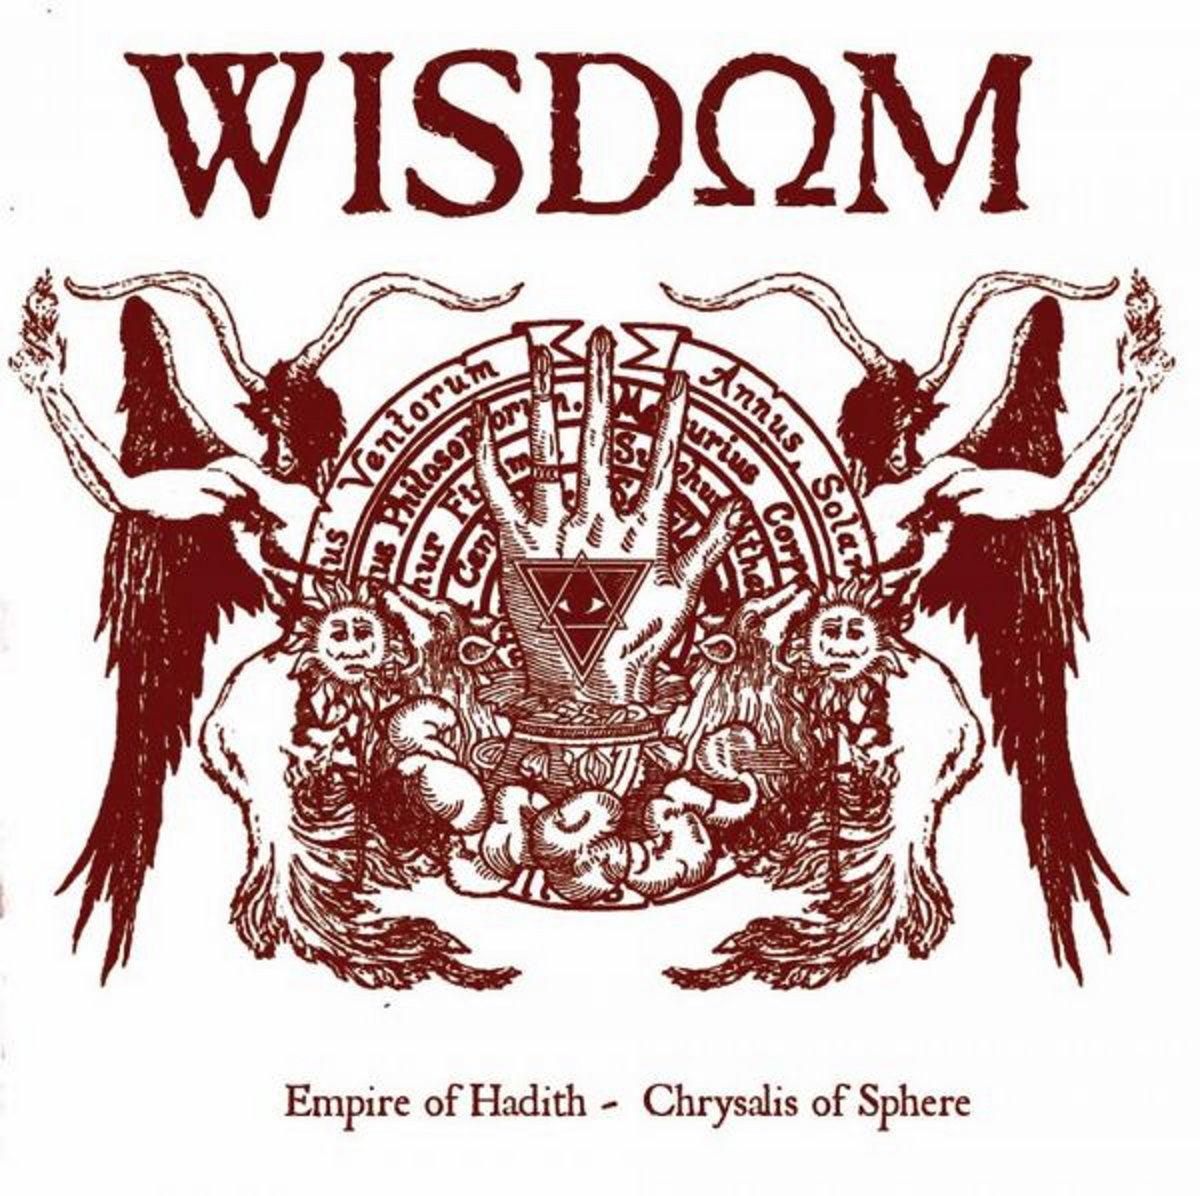 http://wisdompy.bandcamp.com/album/empire-of-hadith-chrysalis-of-sphere